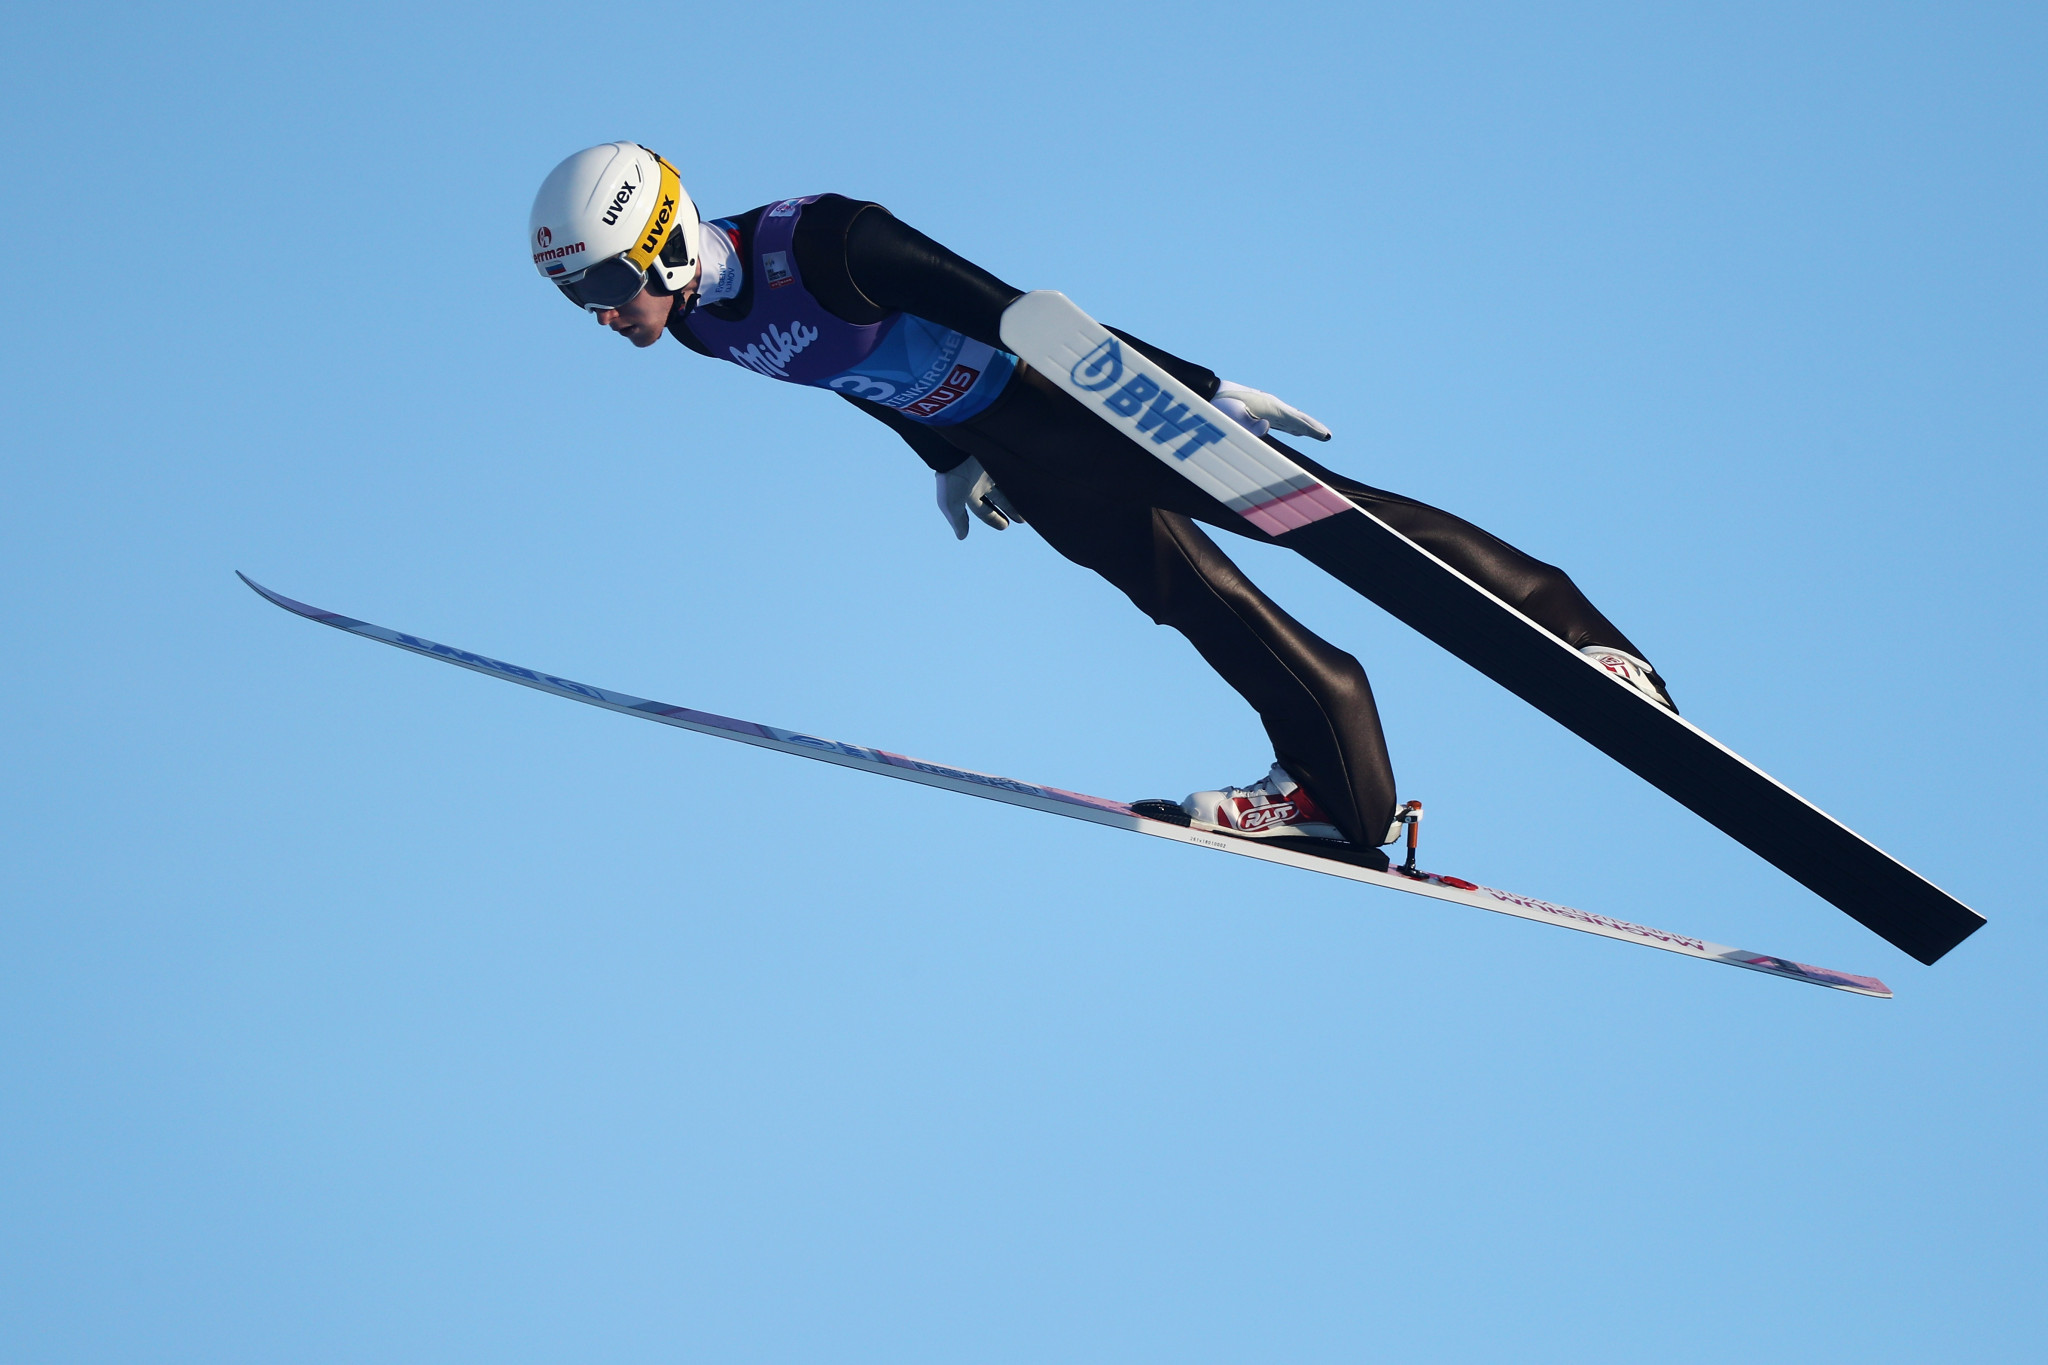 Klimov tops qualification at FIS Ski Jumping World Cup opener